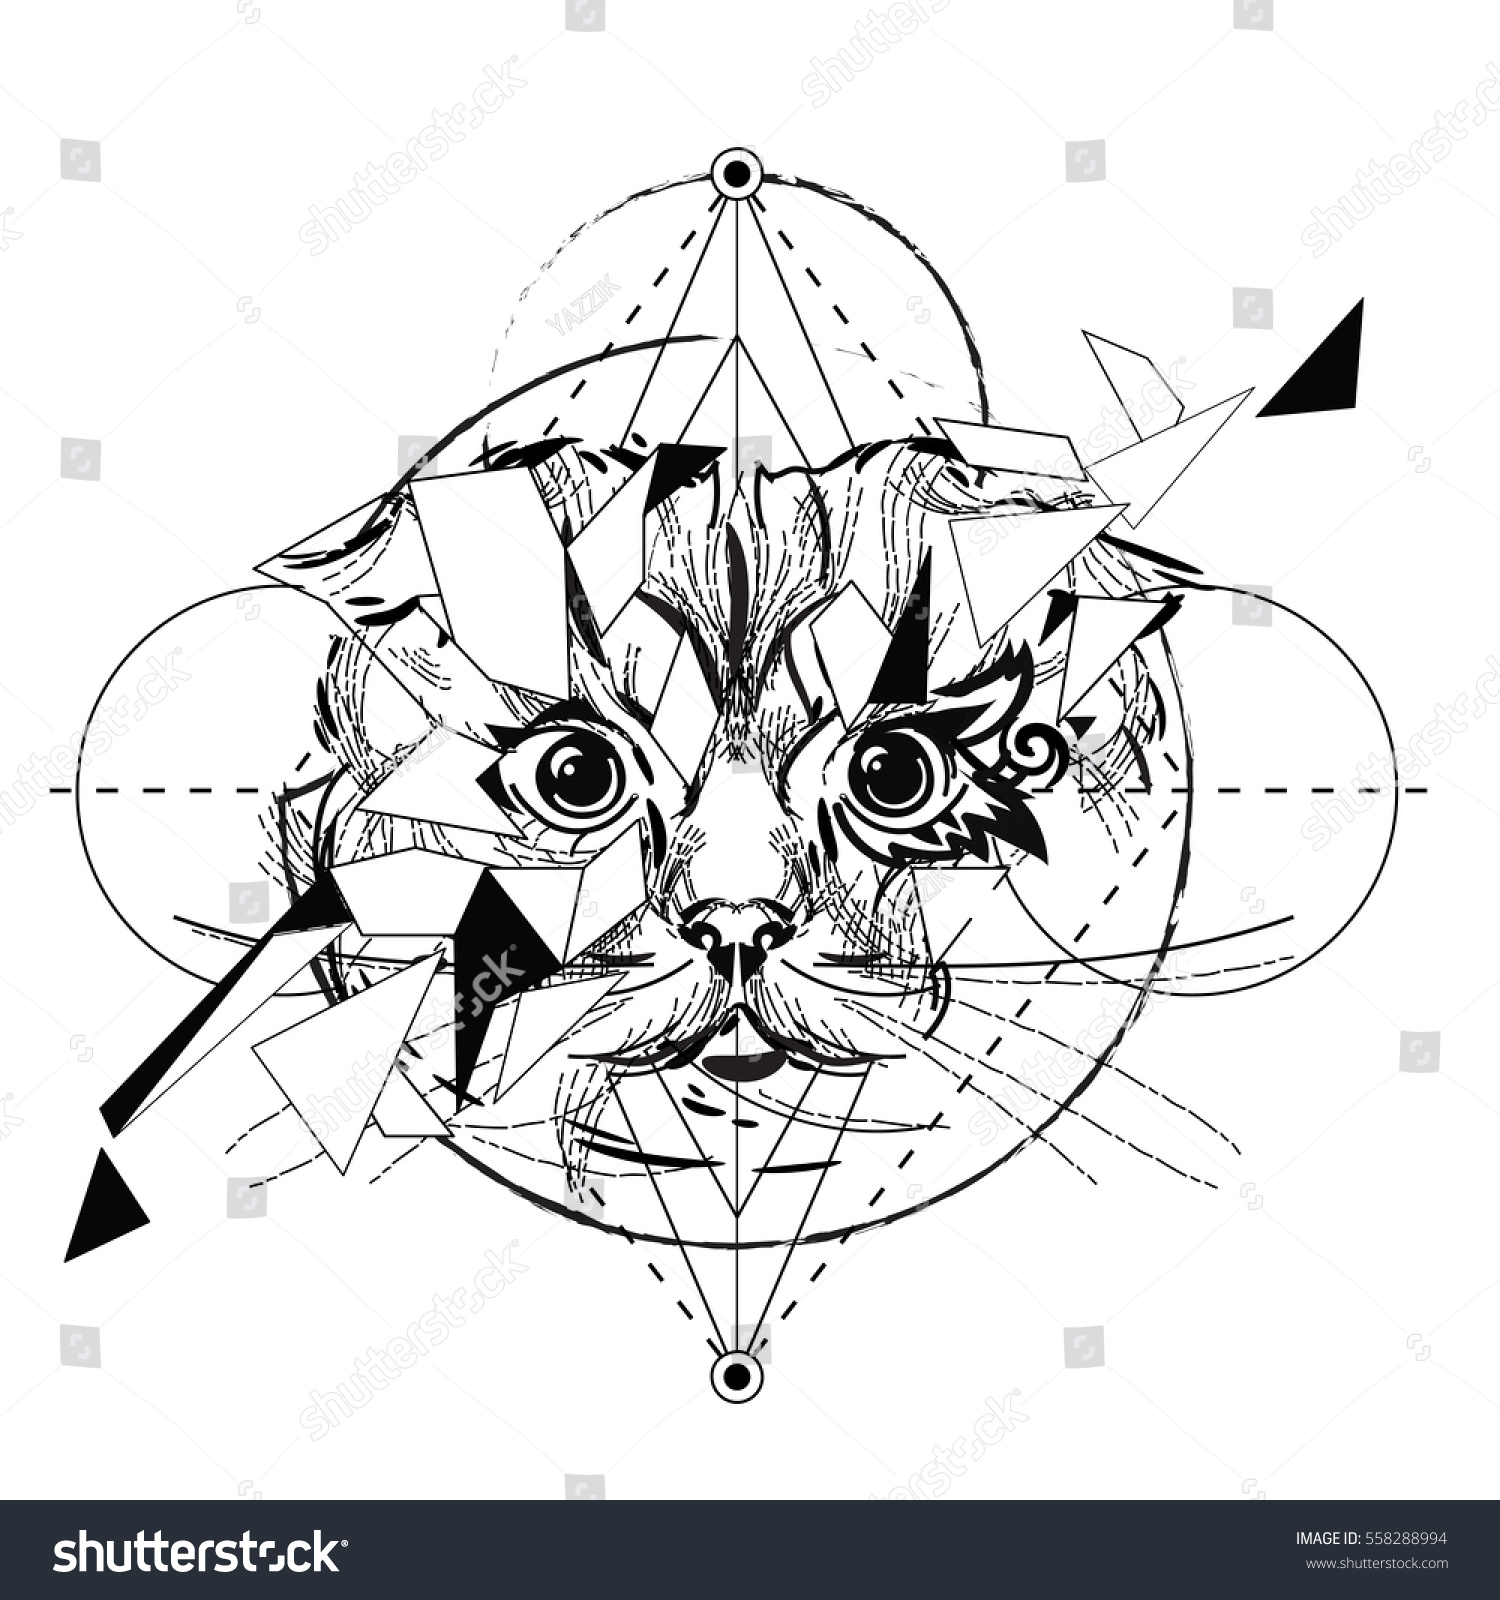 Tiger head triangular icon geometric trendy stock vector image - Animal Head Triangular Icon Geometric Trendy Line Design Vector Illustration Ready For Tattoo Or